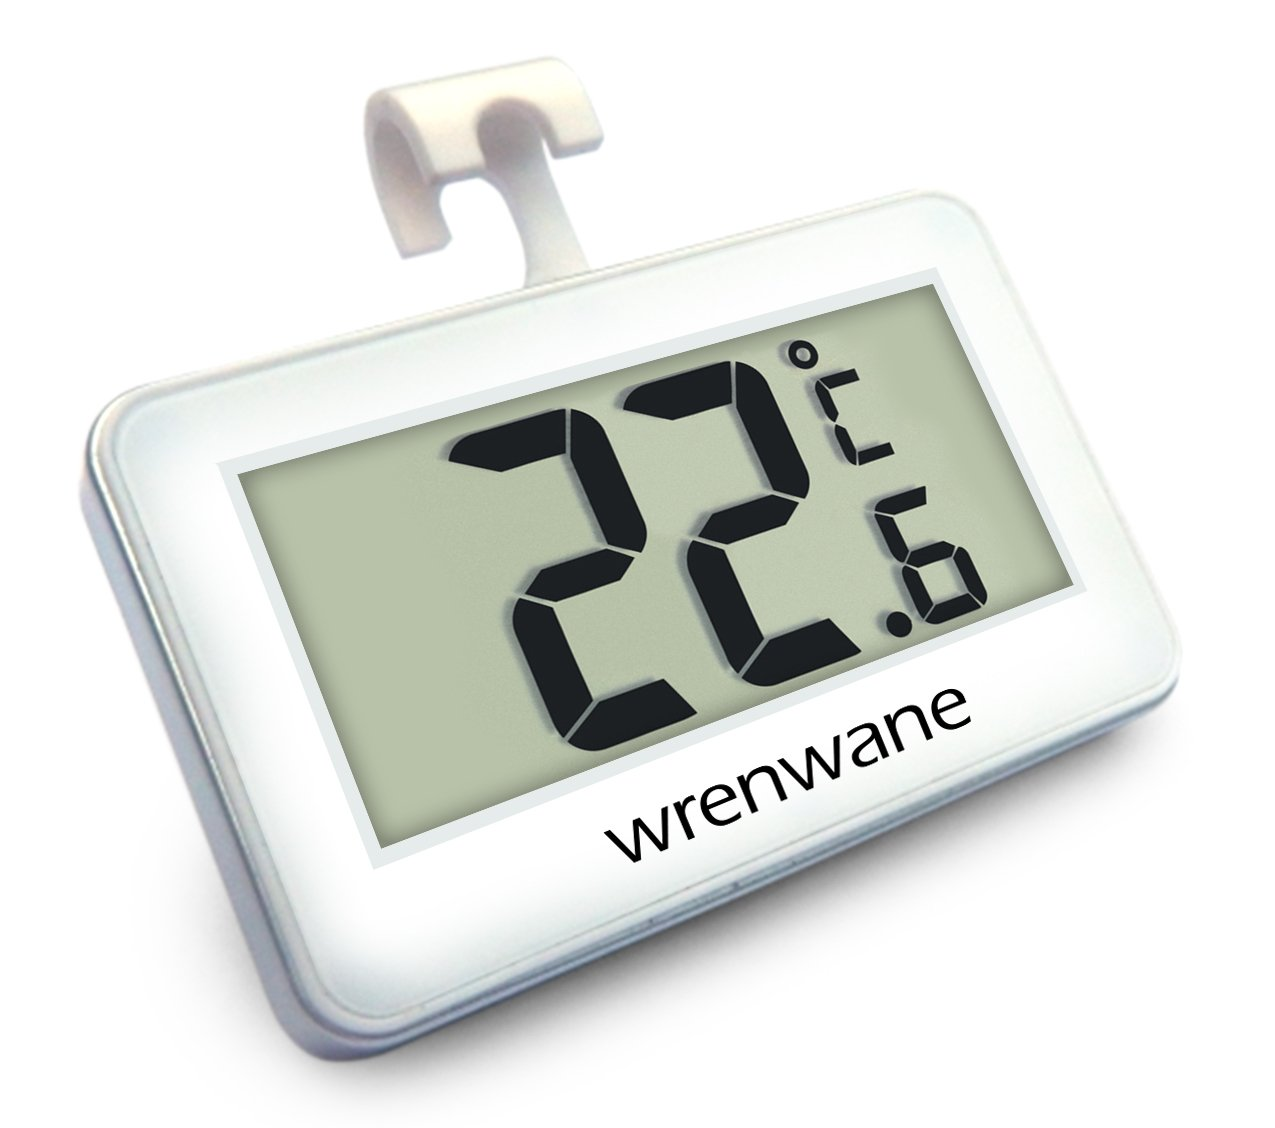 Wrenwane digital thermometer